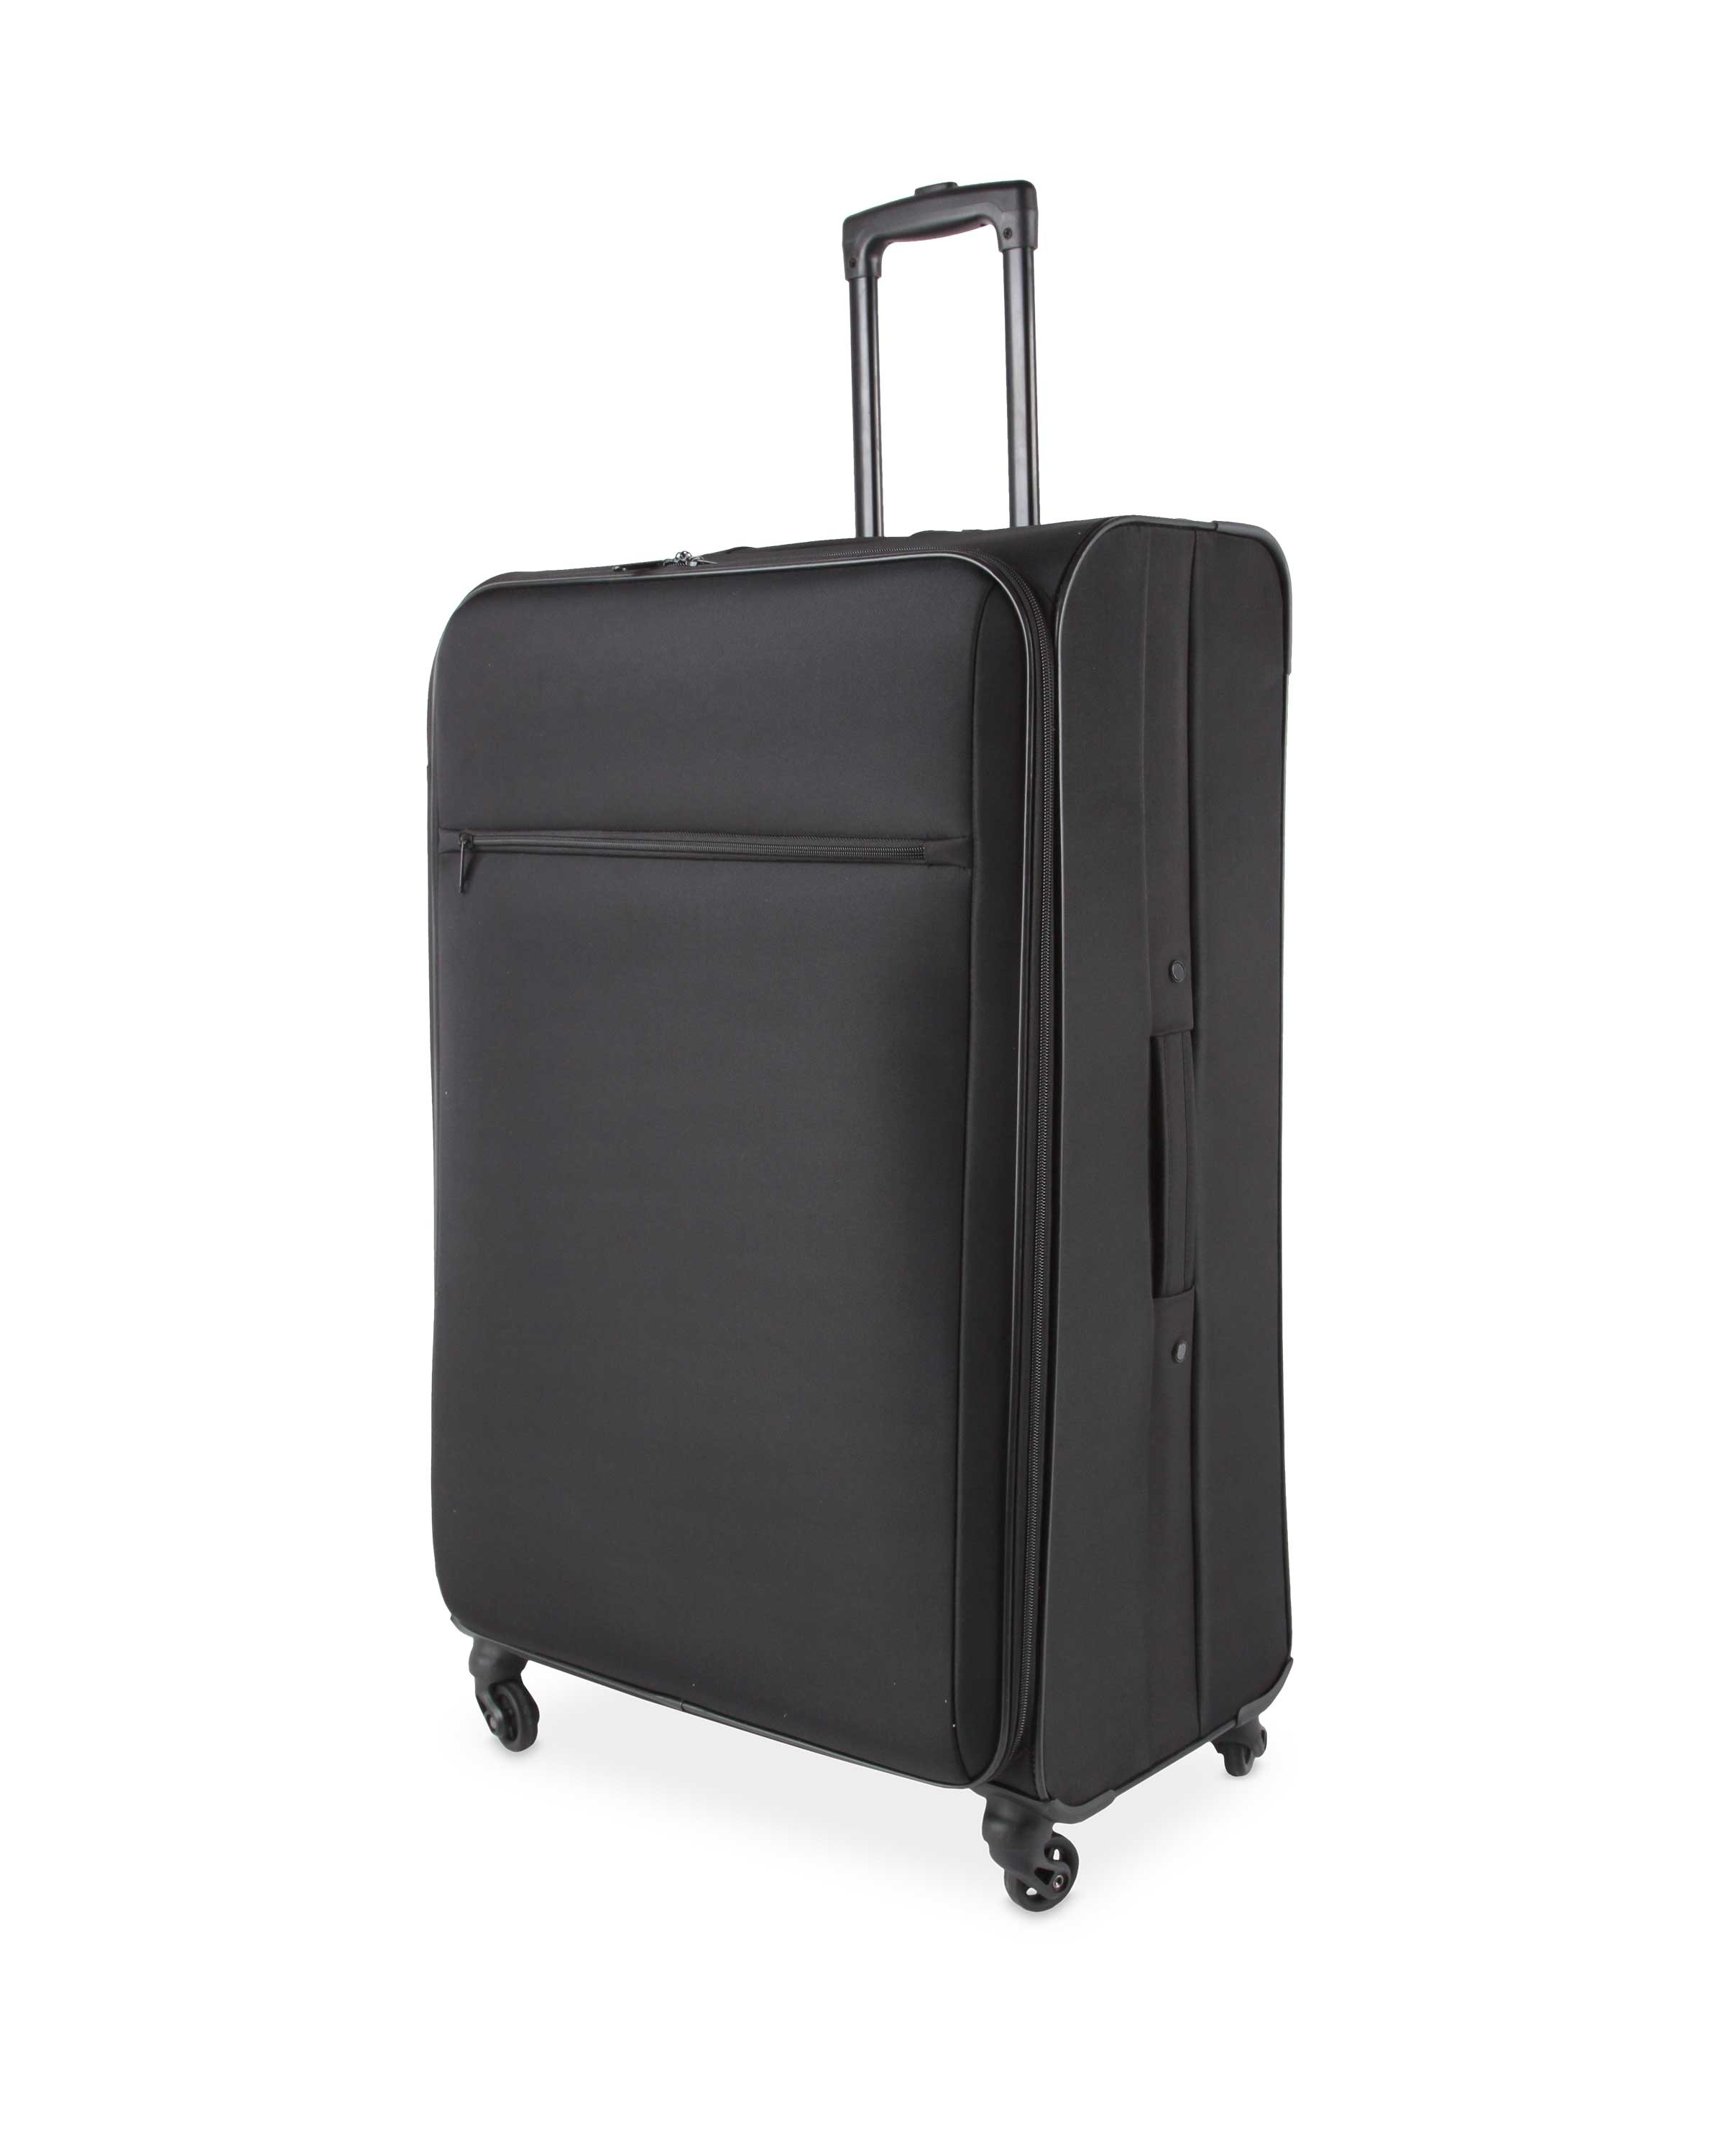 477453afd572 Avenue Large Black Travel Case